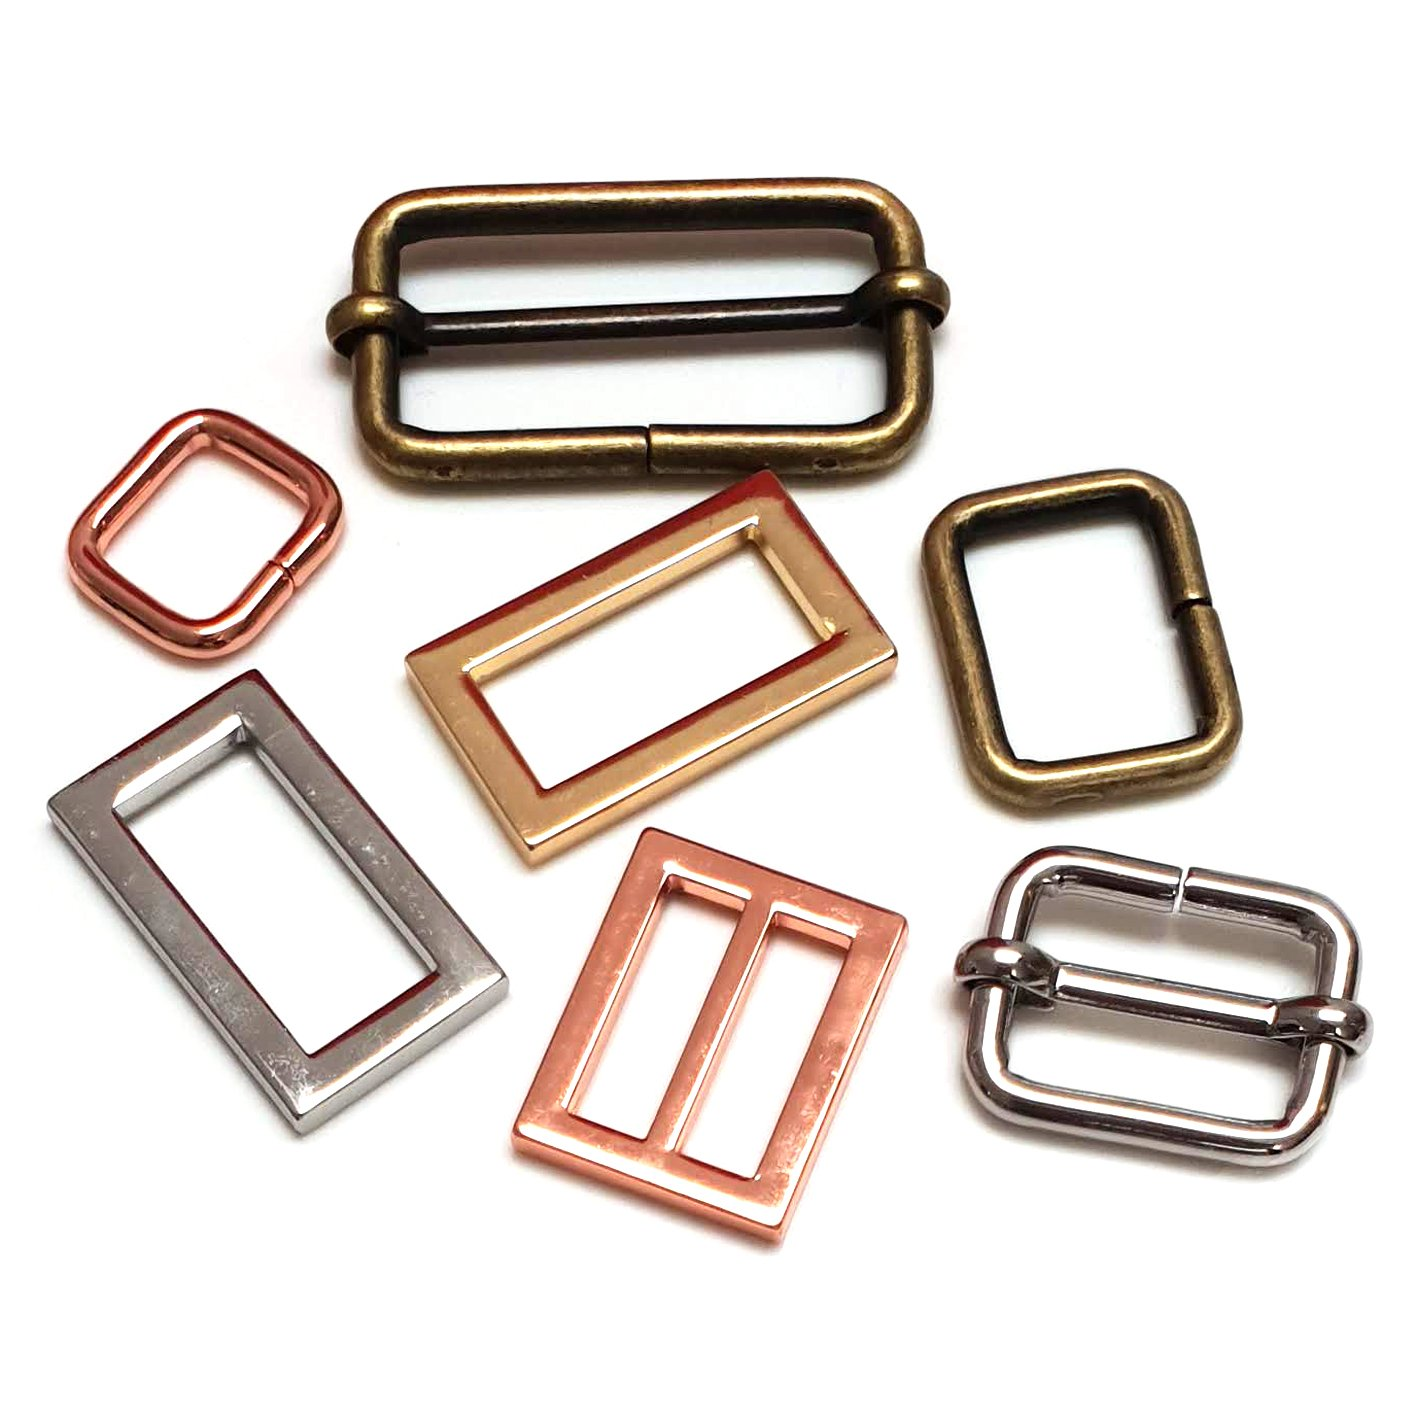 Square Rings and Sliders